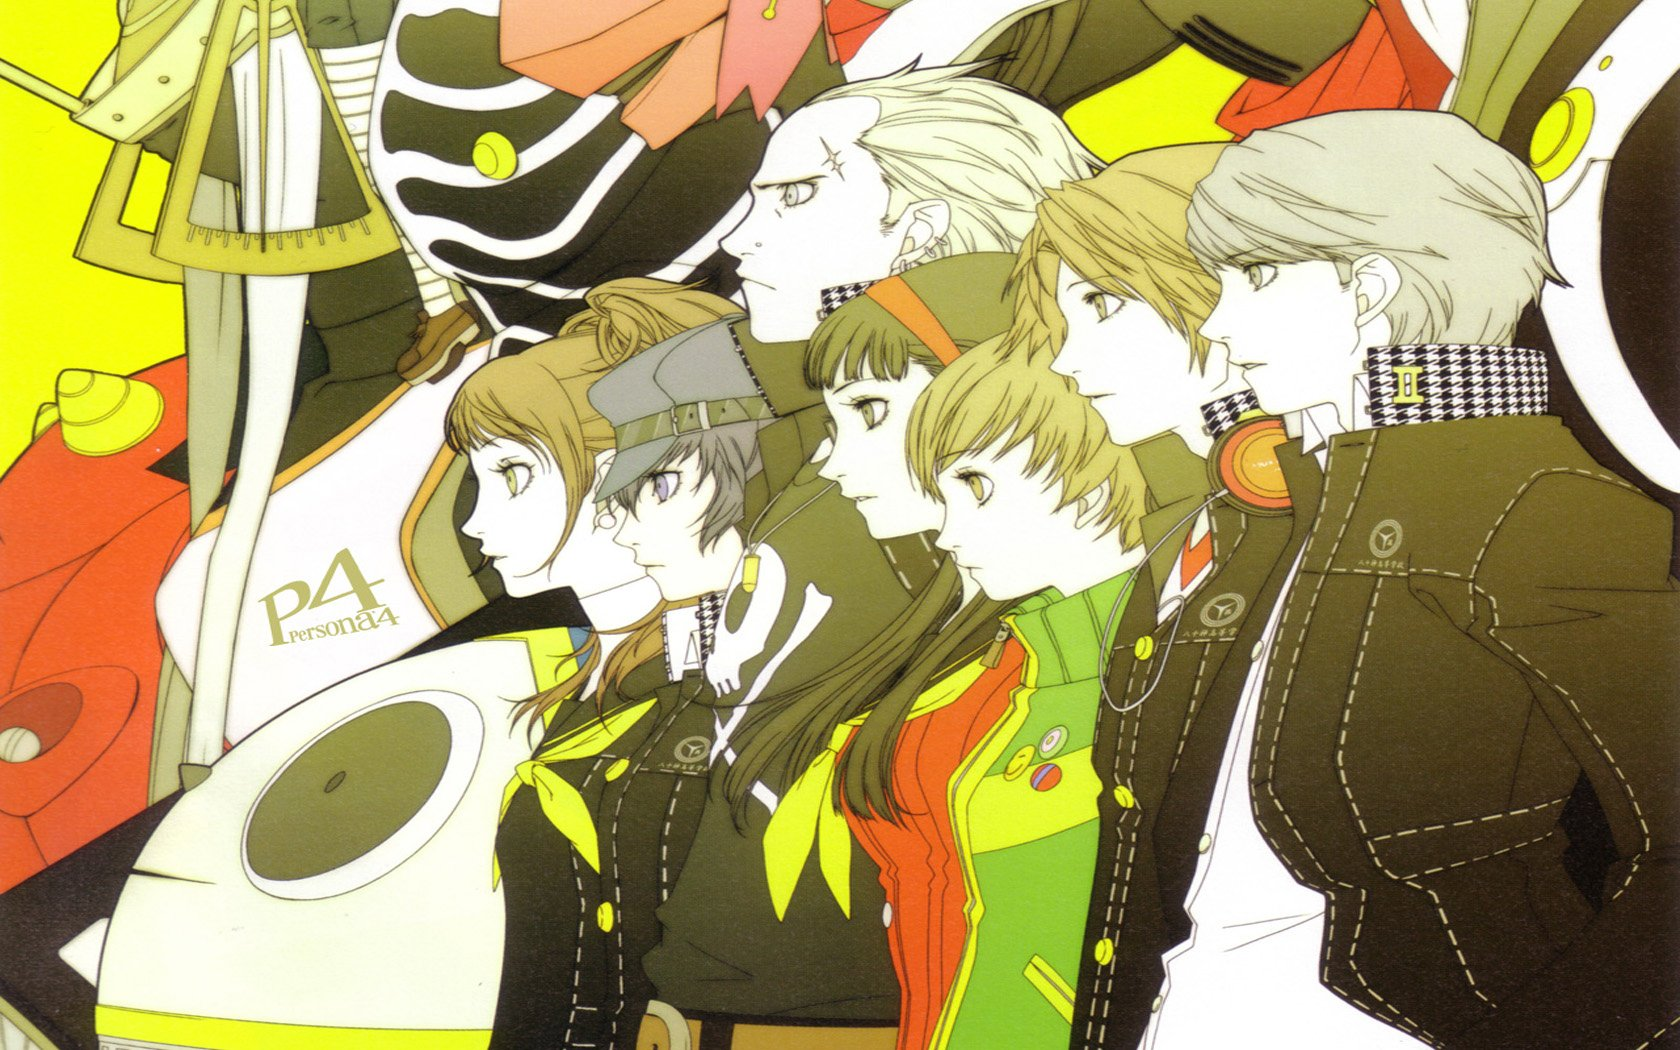 Persona 4 Wallpaper and Background Image | 1680x1050 | ID ...